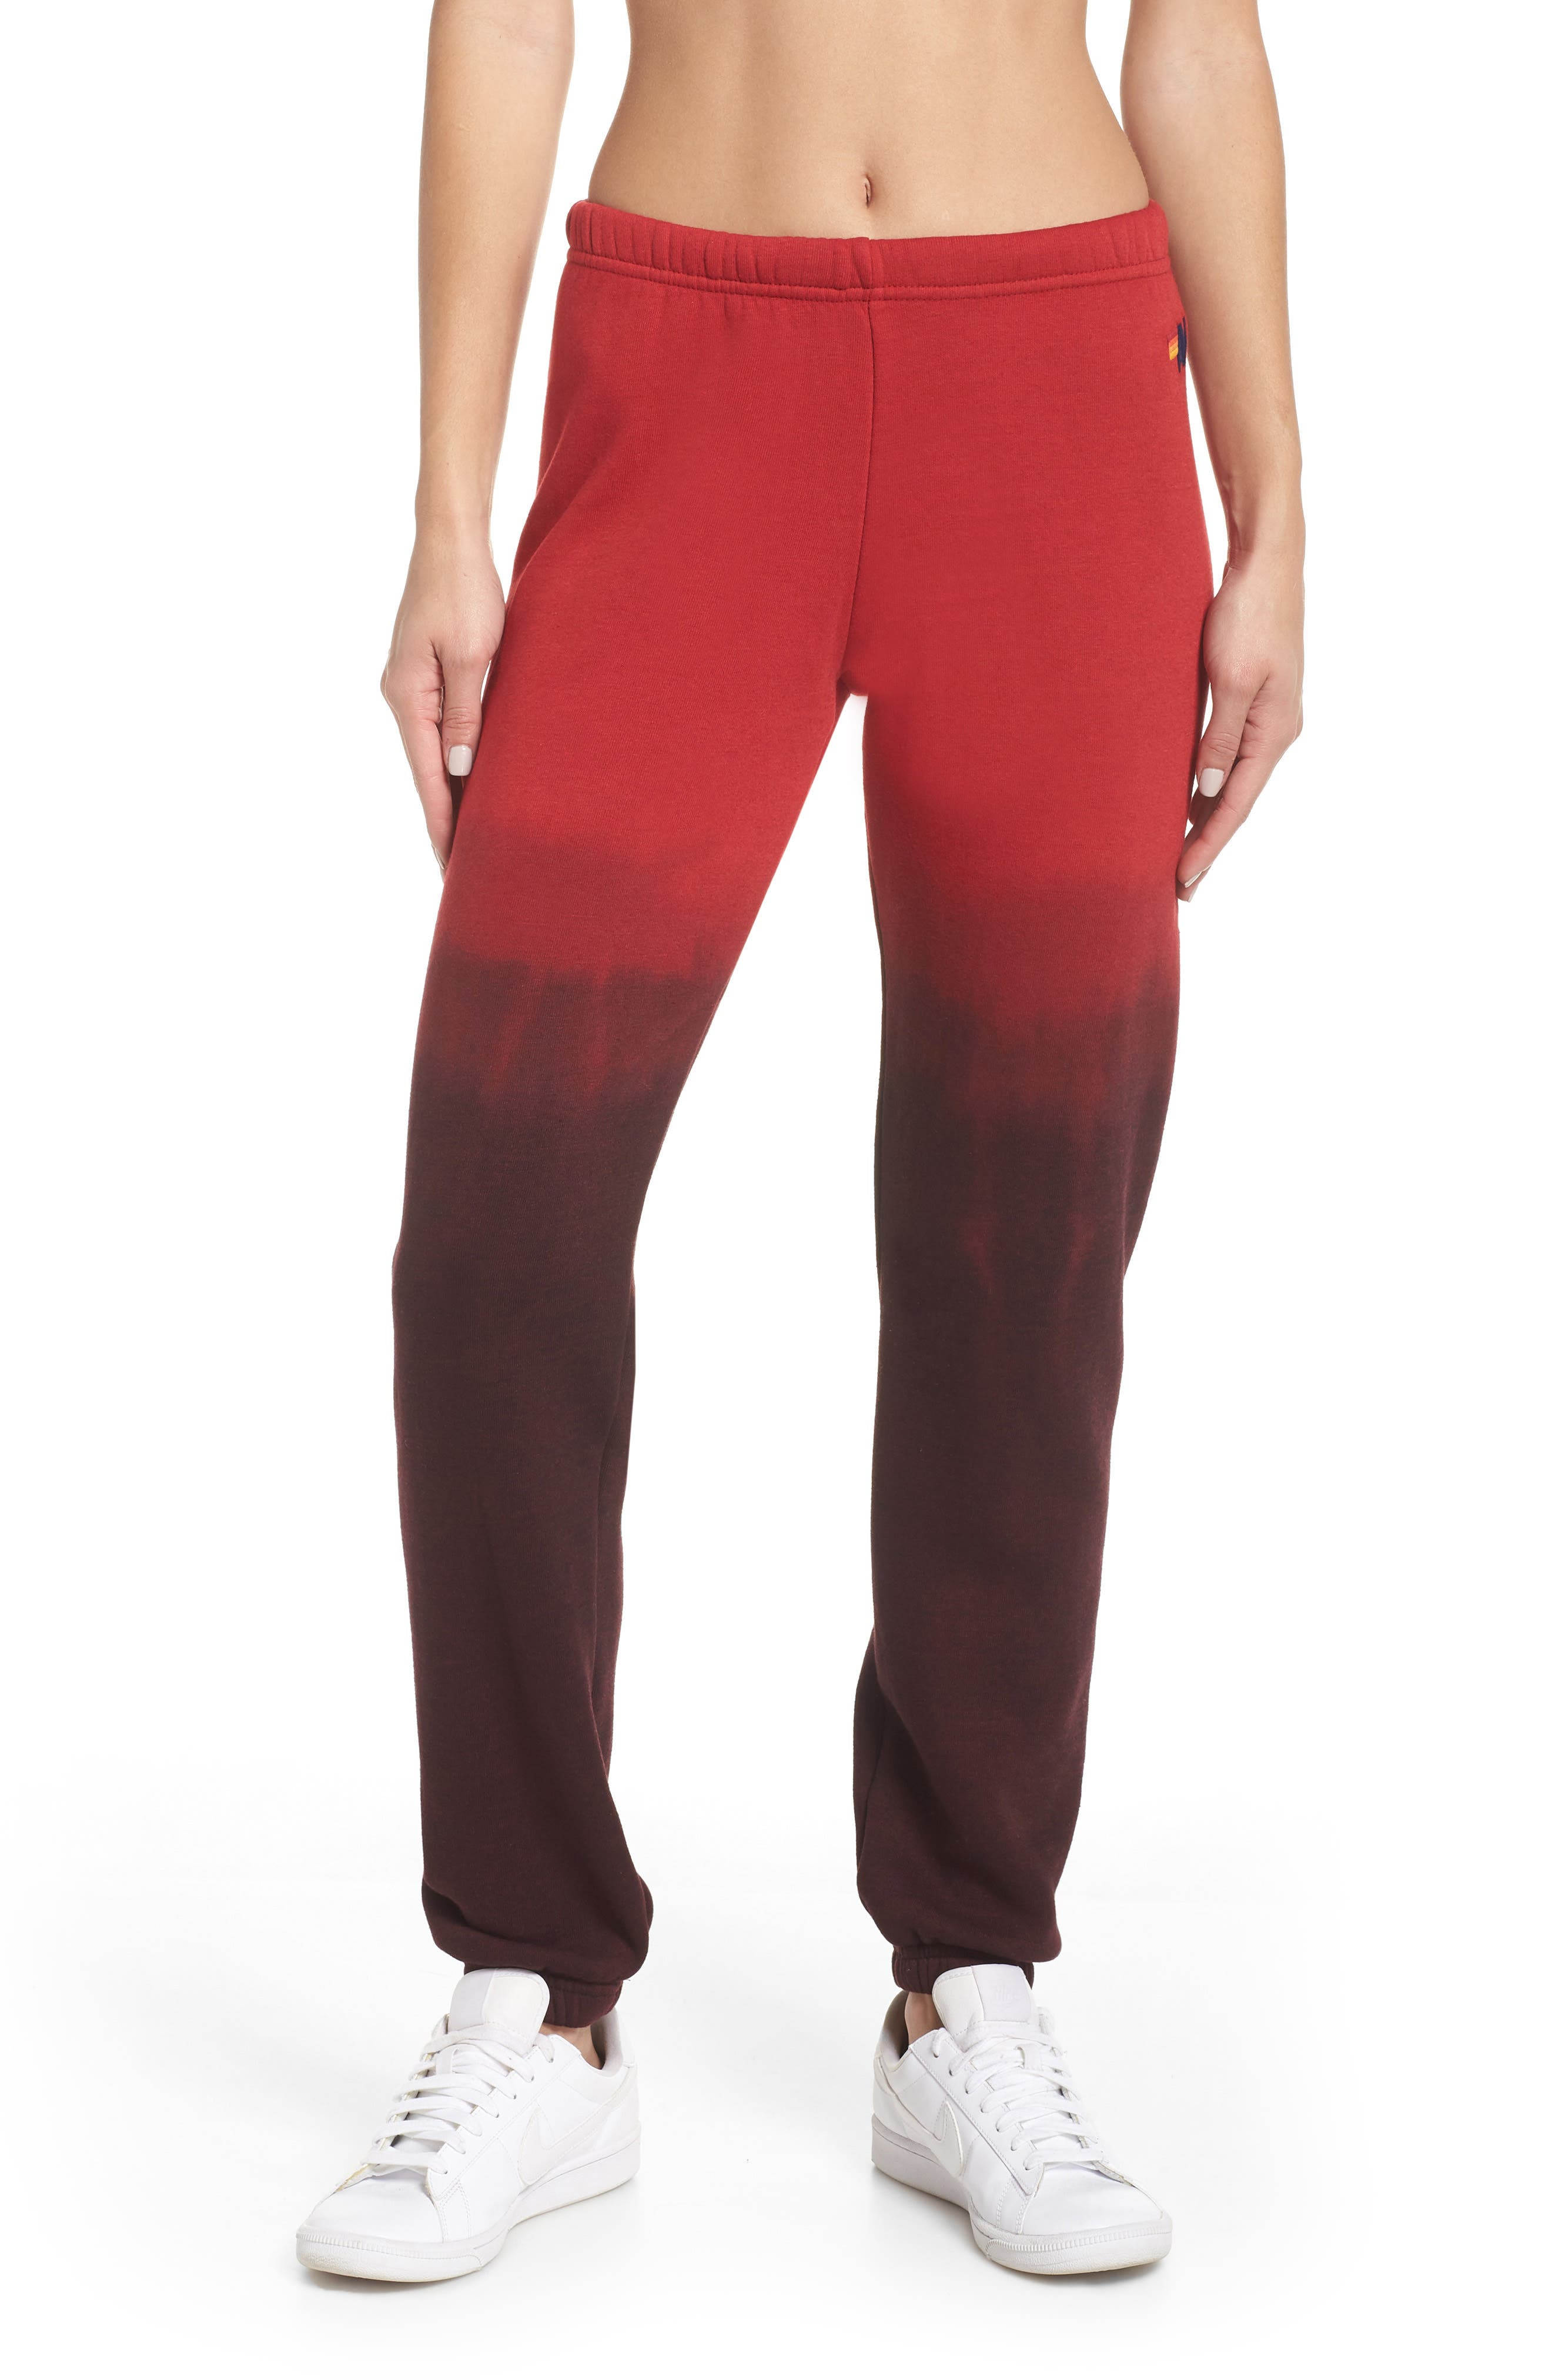 AVIATOR NATION, Faded Sweatpants, Main thumbnail 1, color, RED / CHARCOAL